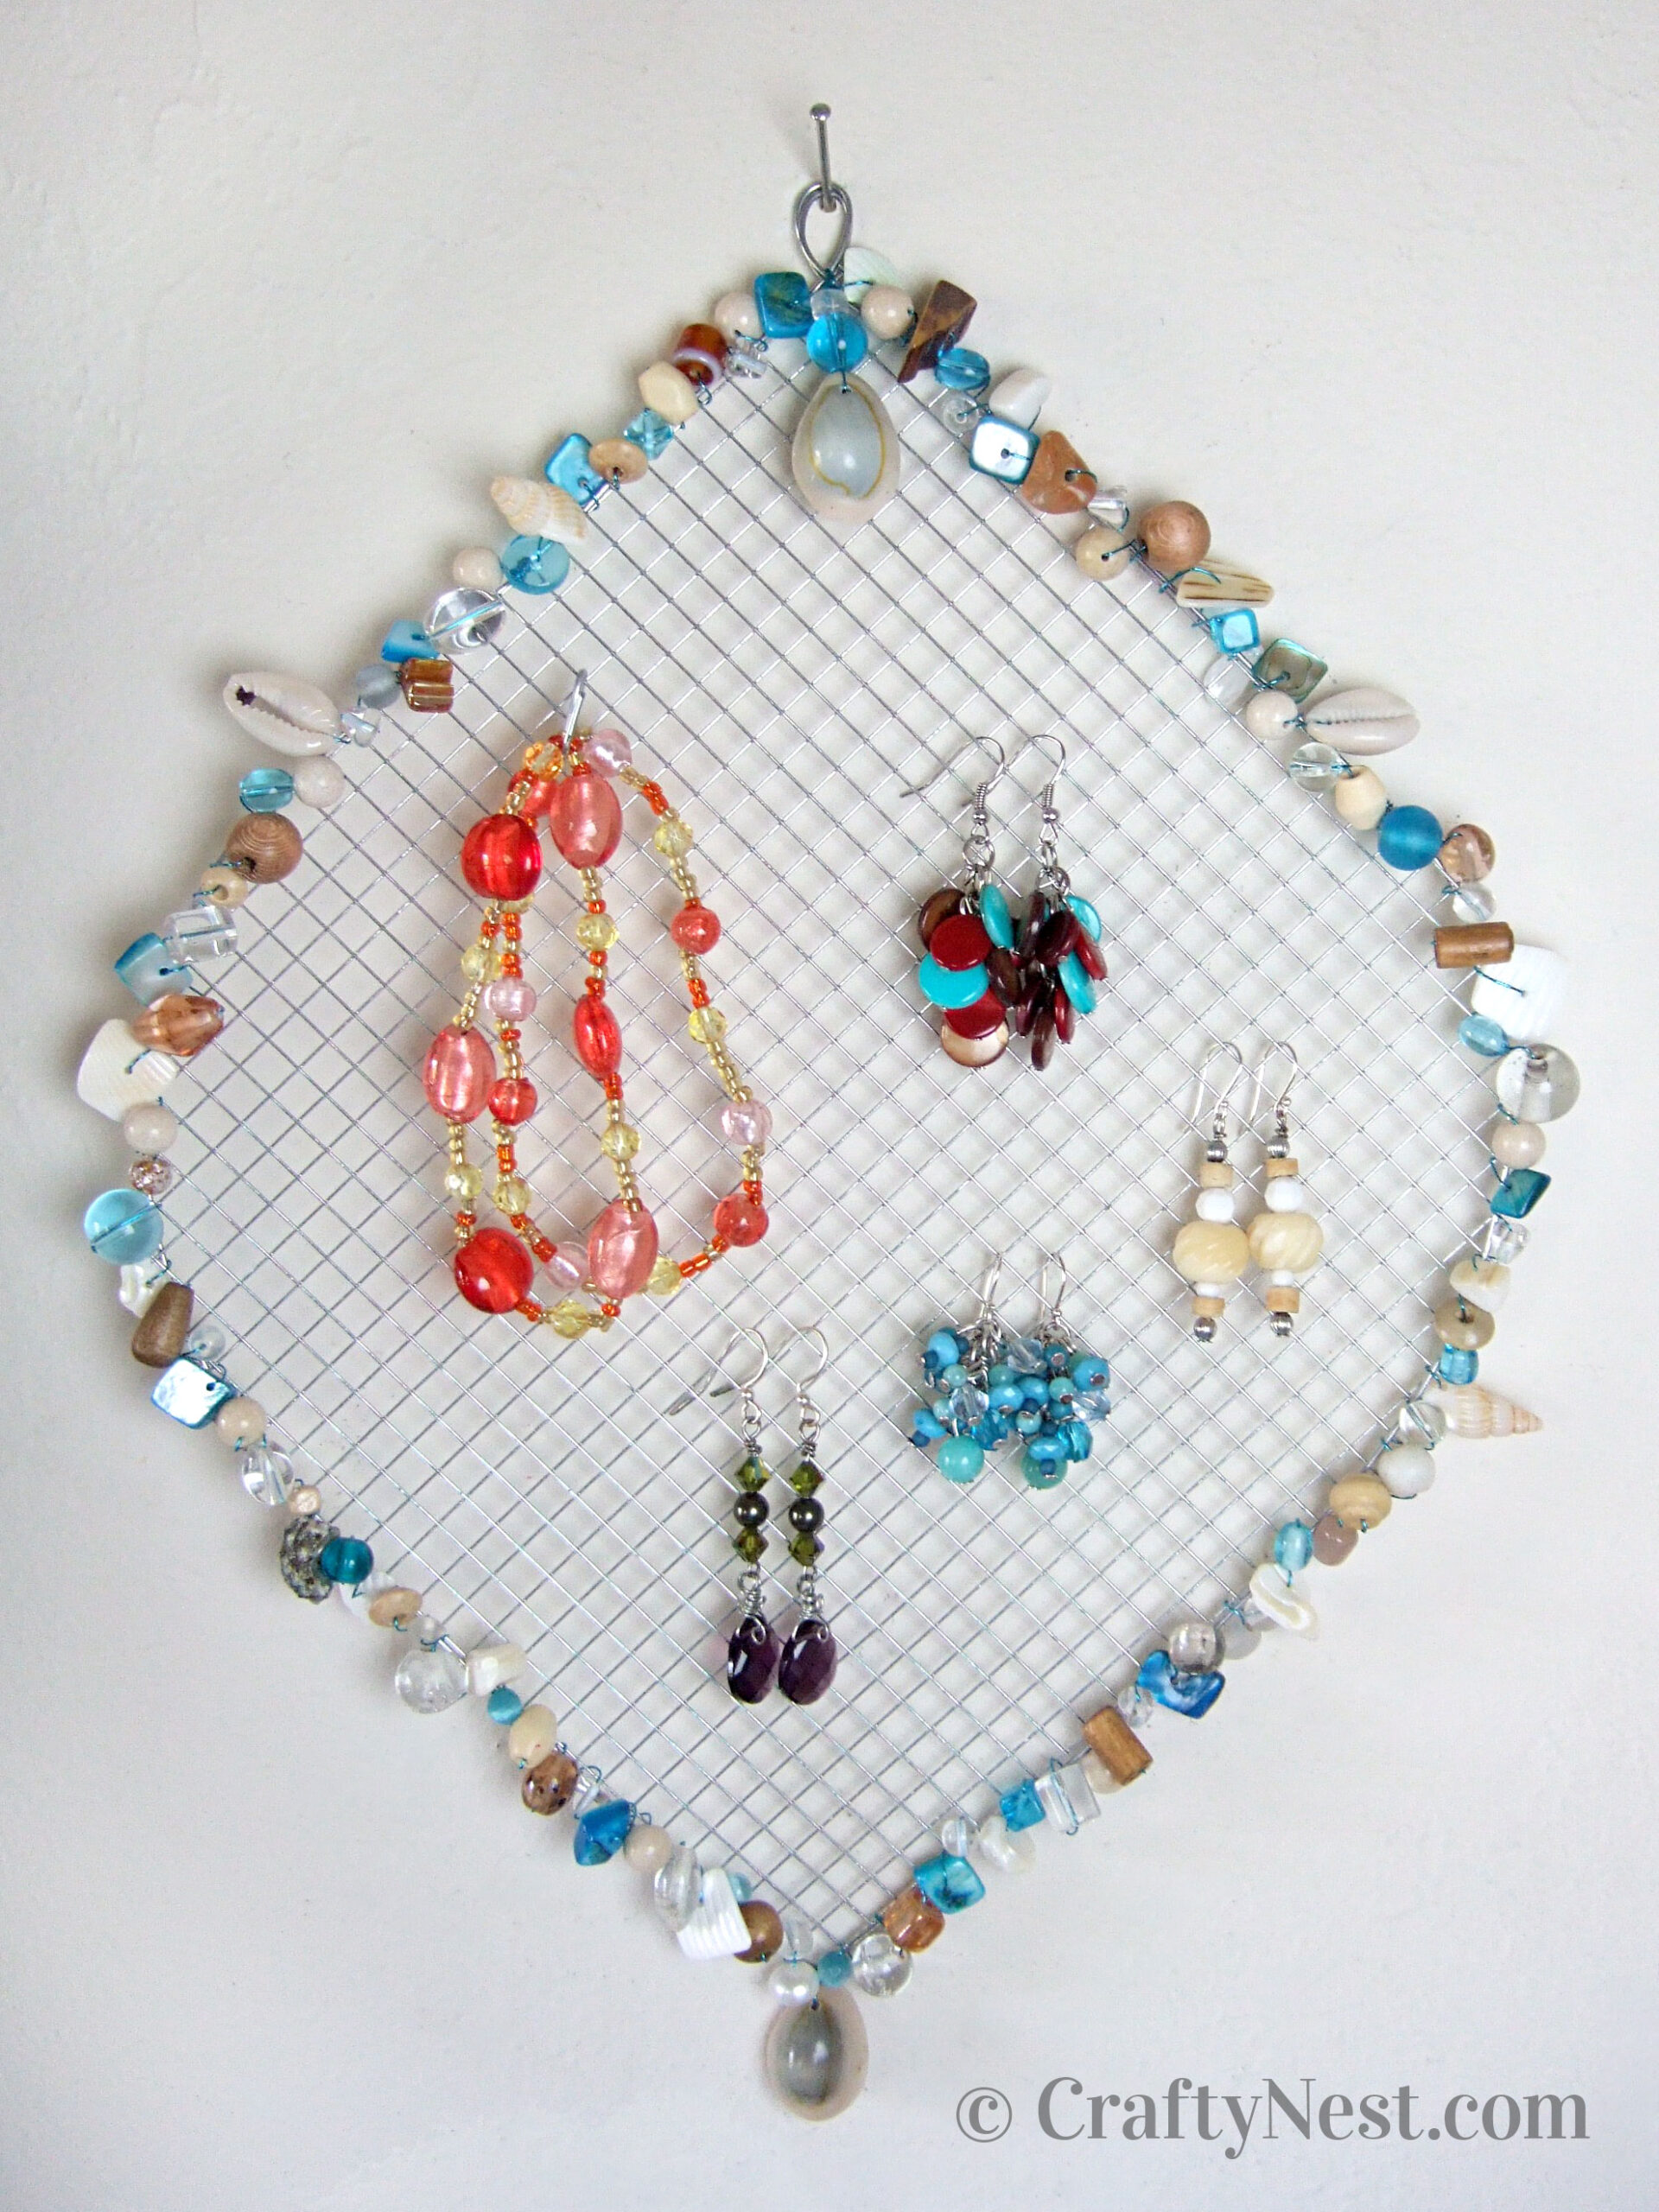 Wire mesh jewelry holder with beads, photo